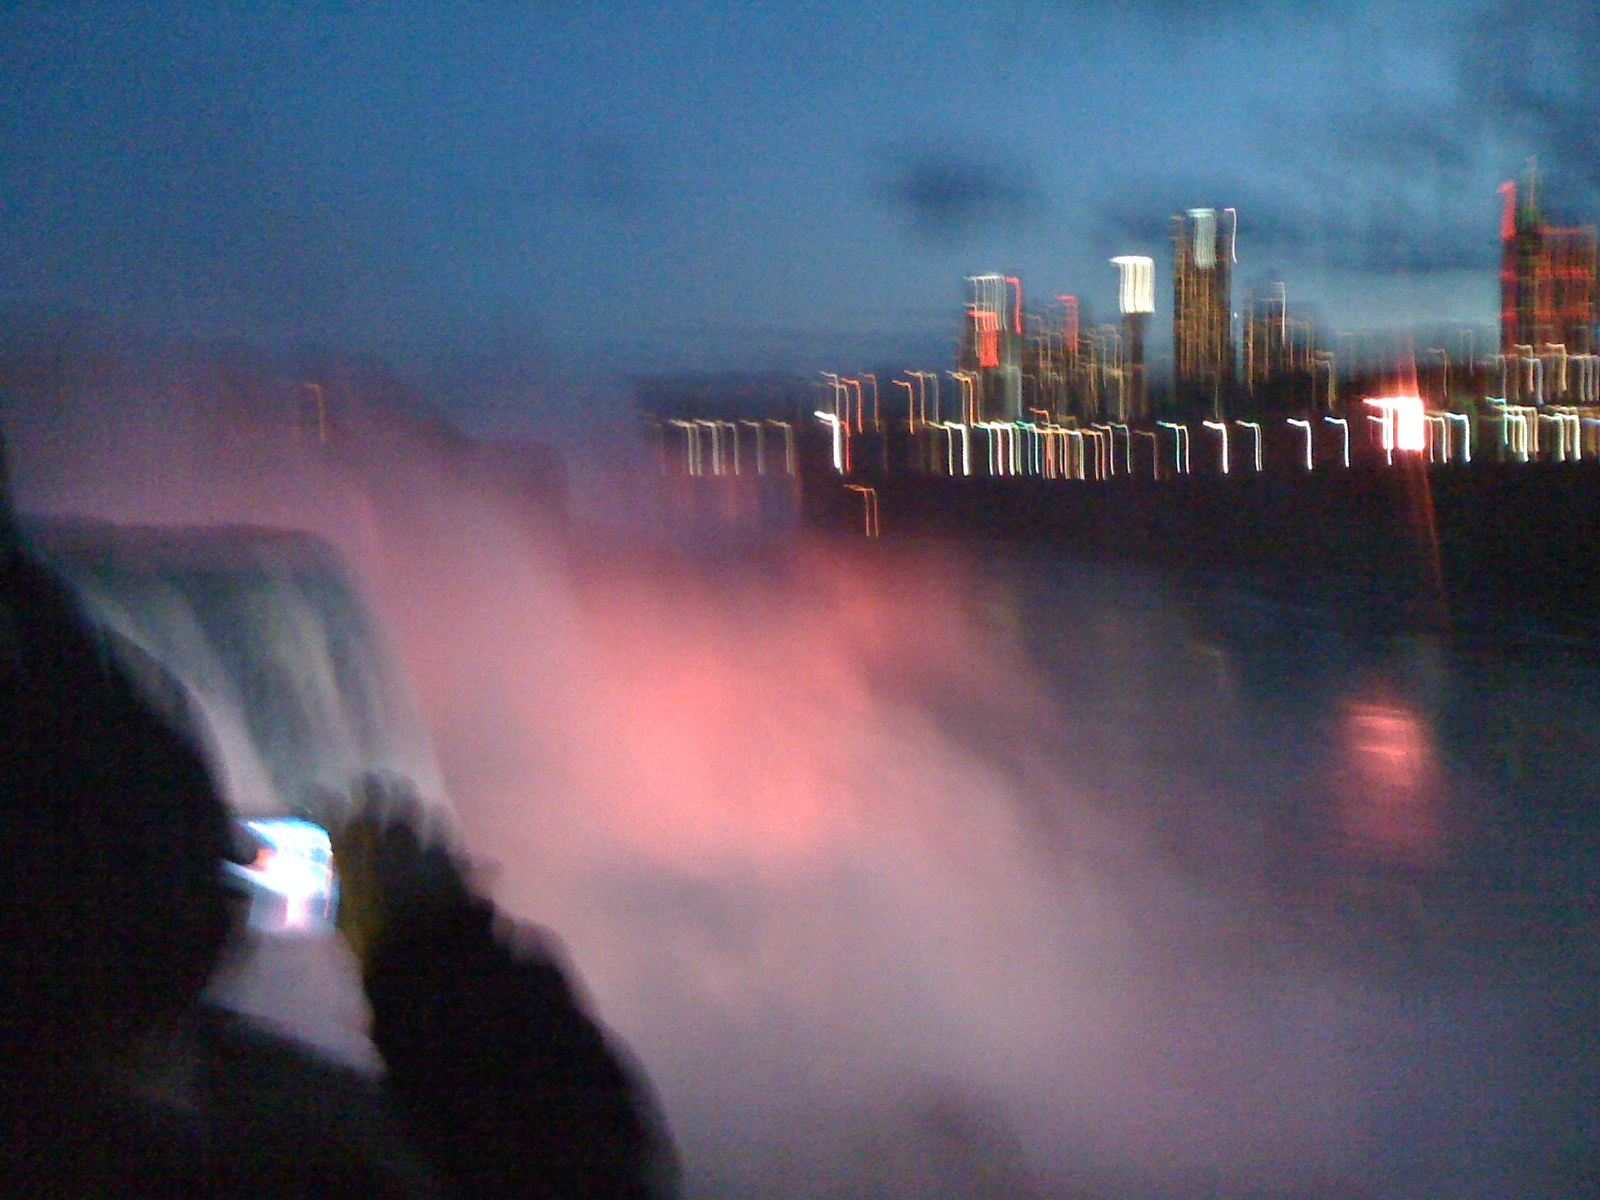 Niagara falls lit up from Canadian side